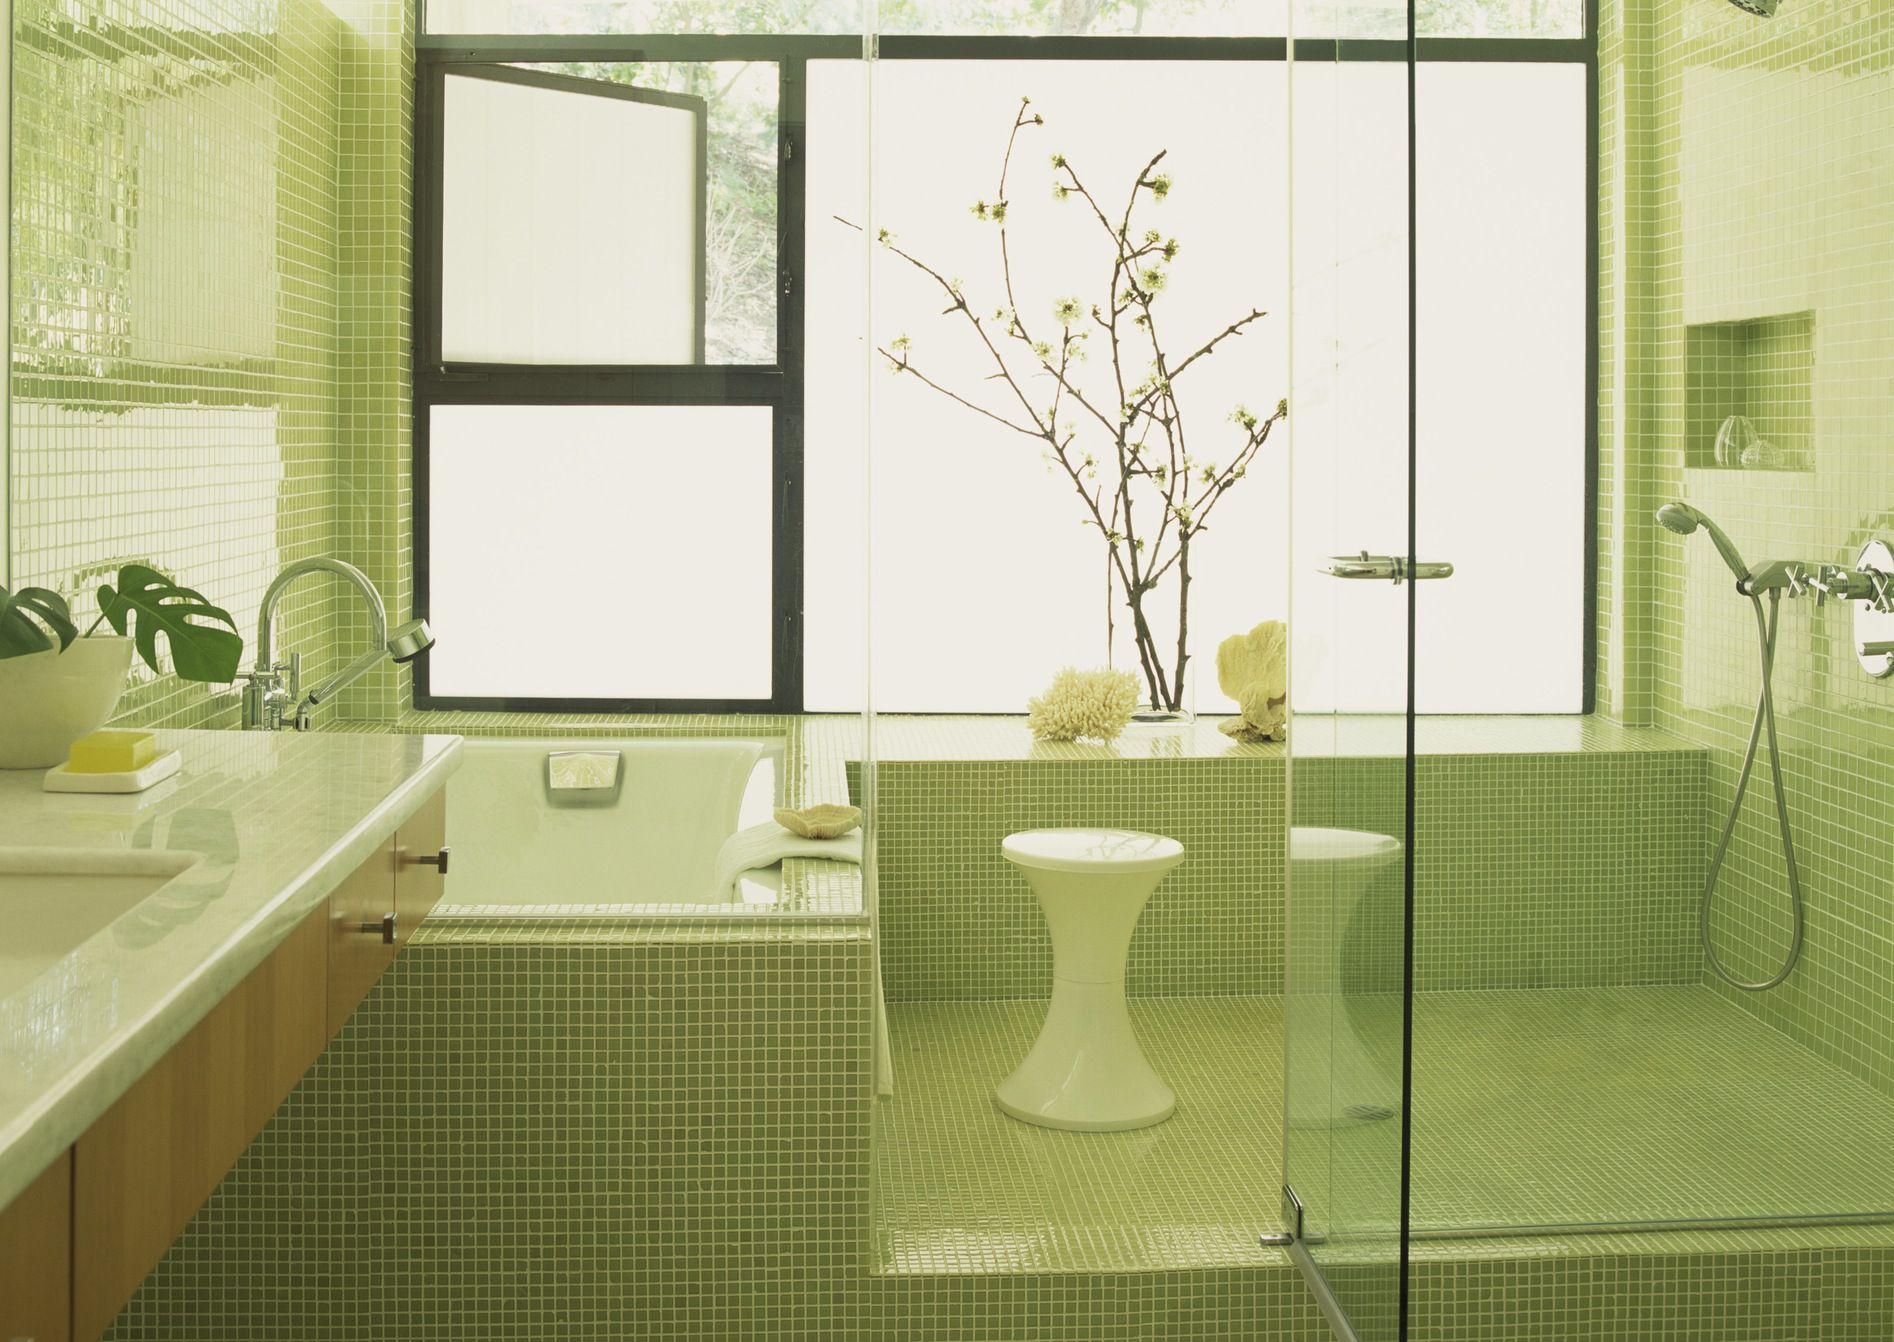 The four laws of tilingkitchen bathroom tiles dailygadgetfo Choice Image